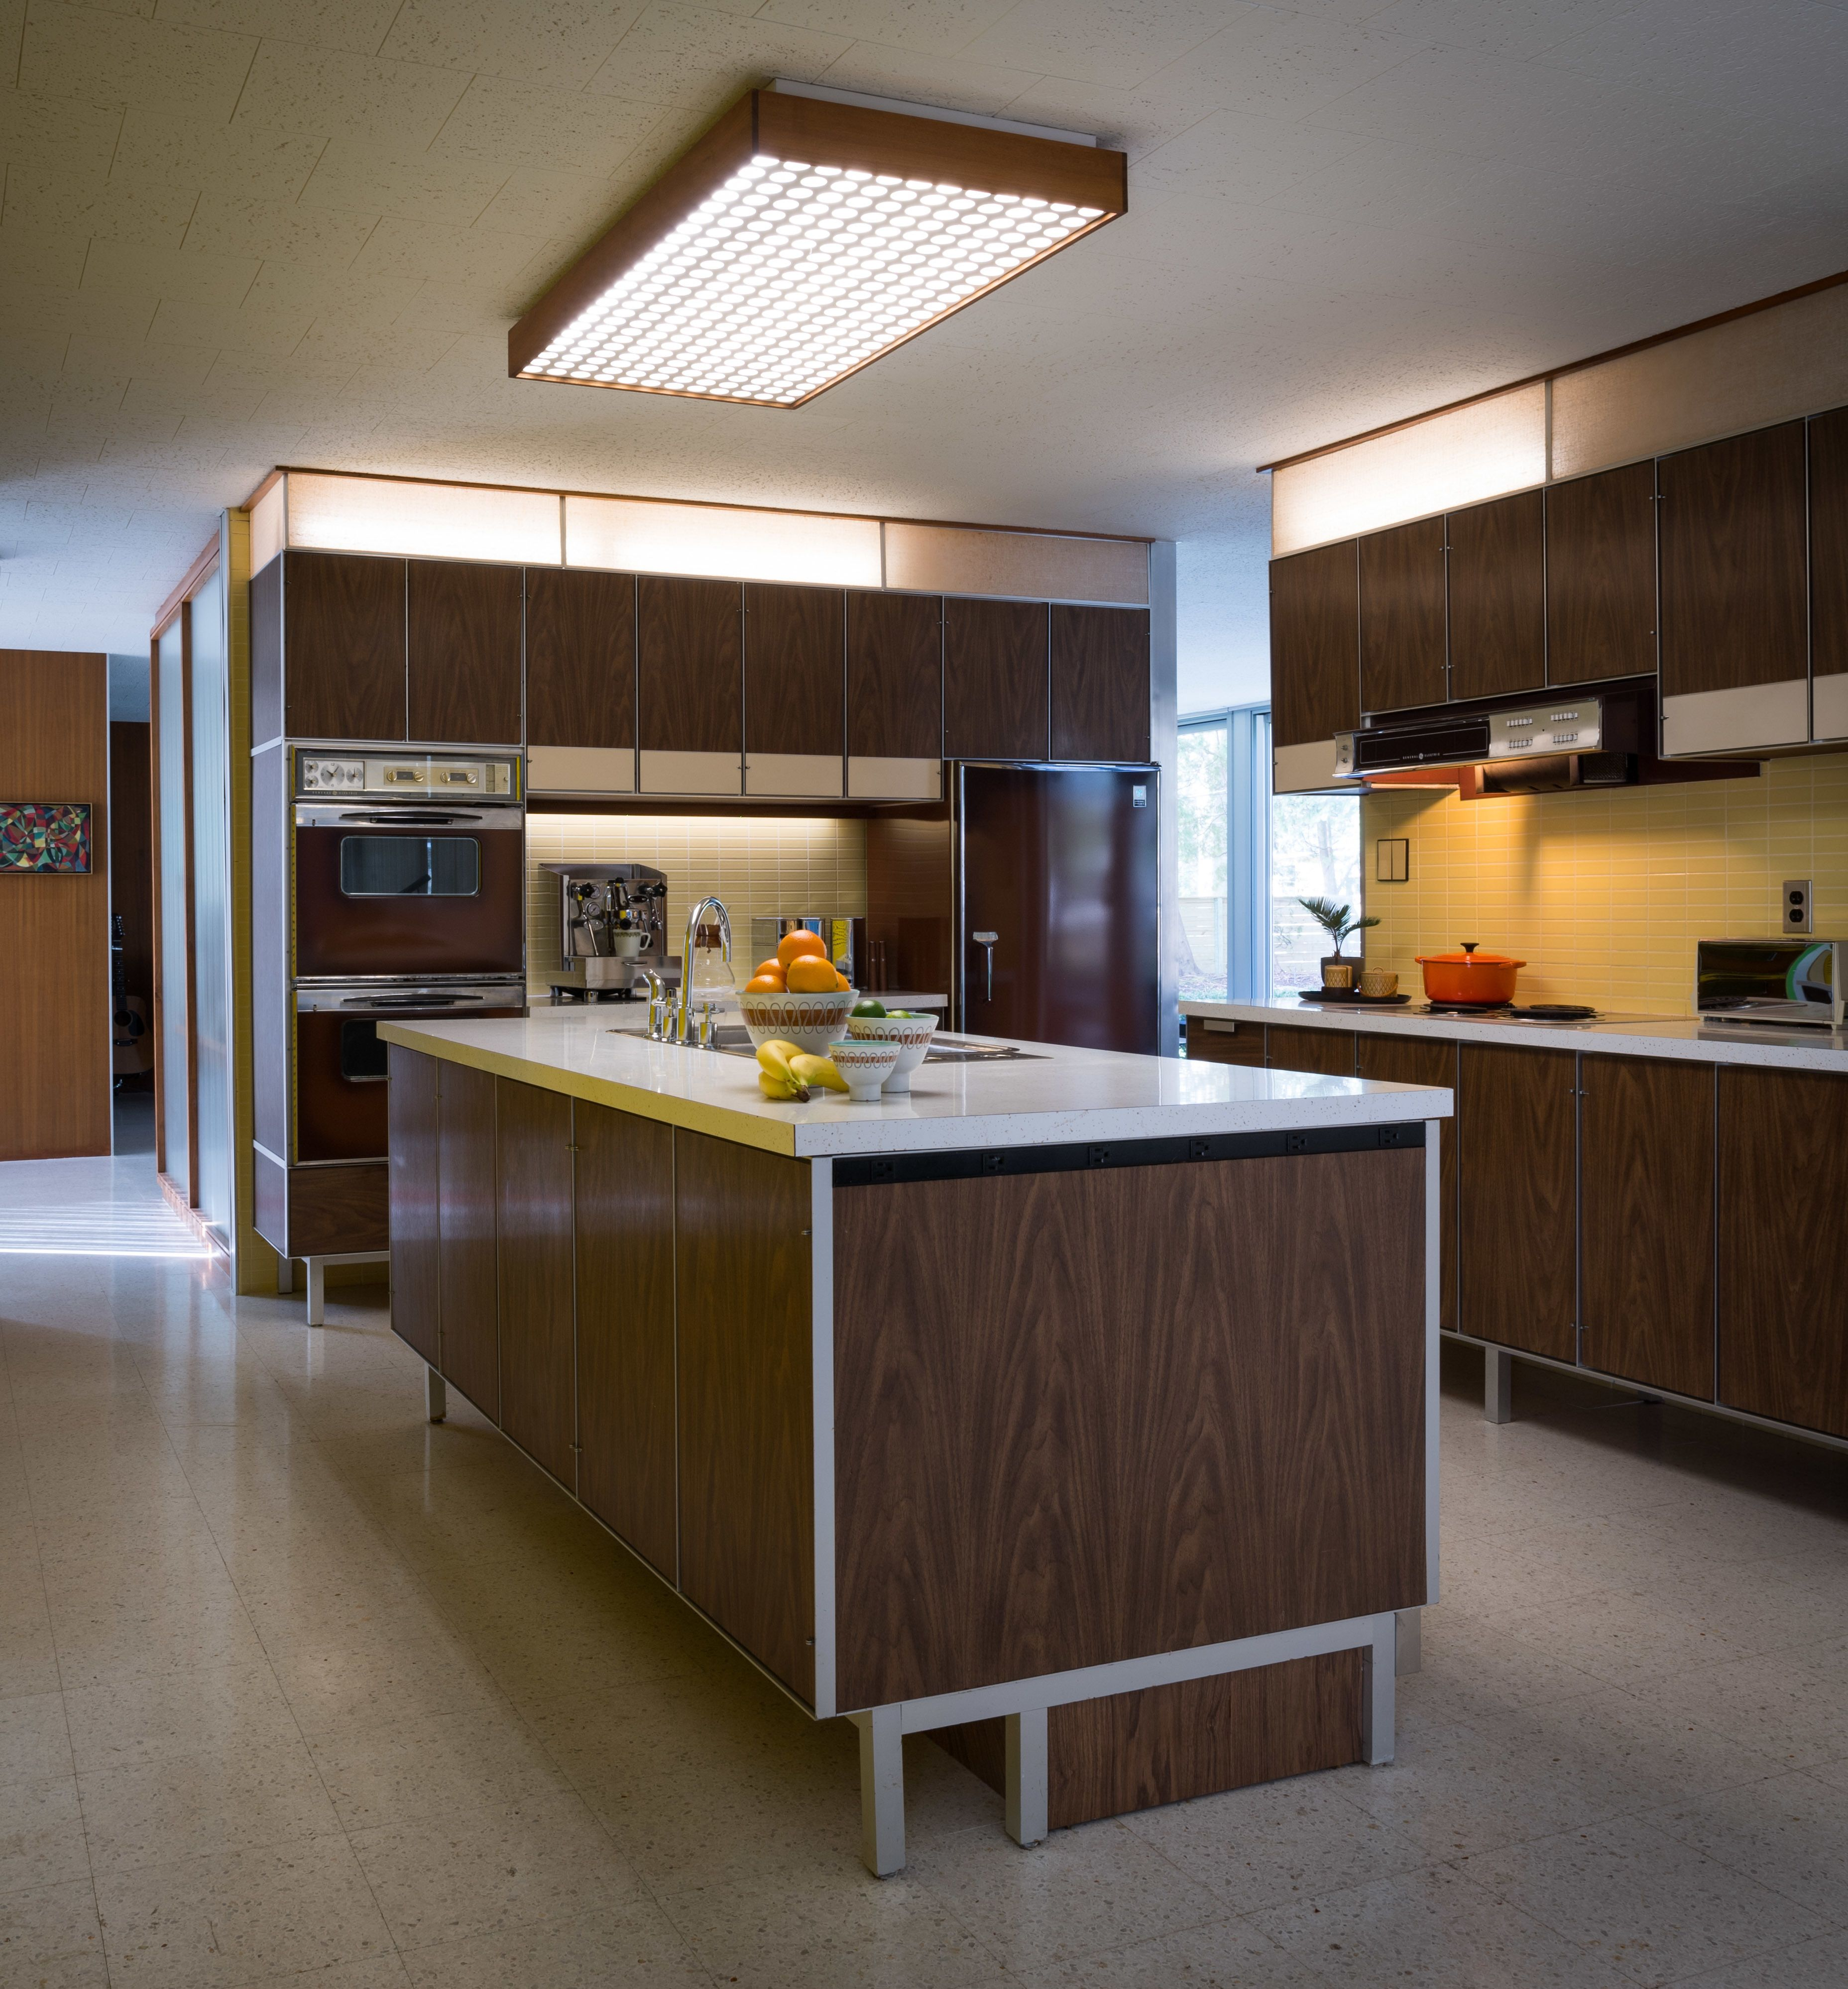 6 of 14 in A Rare Midcentury Prefab Looks Just Like it Did in